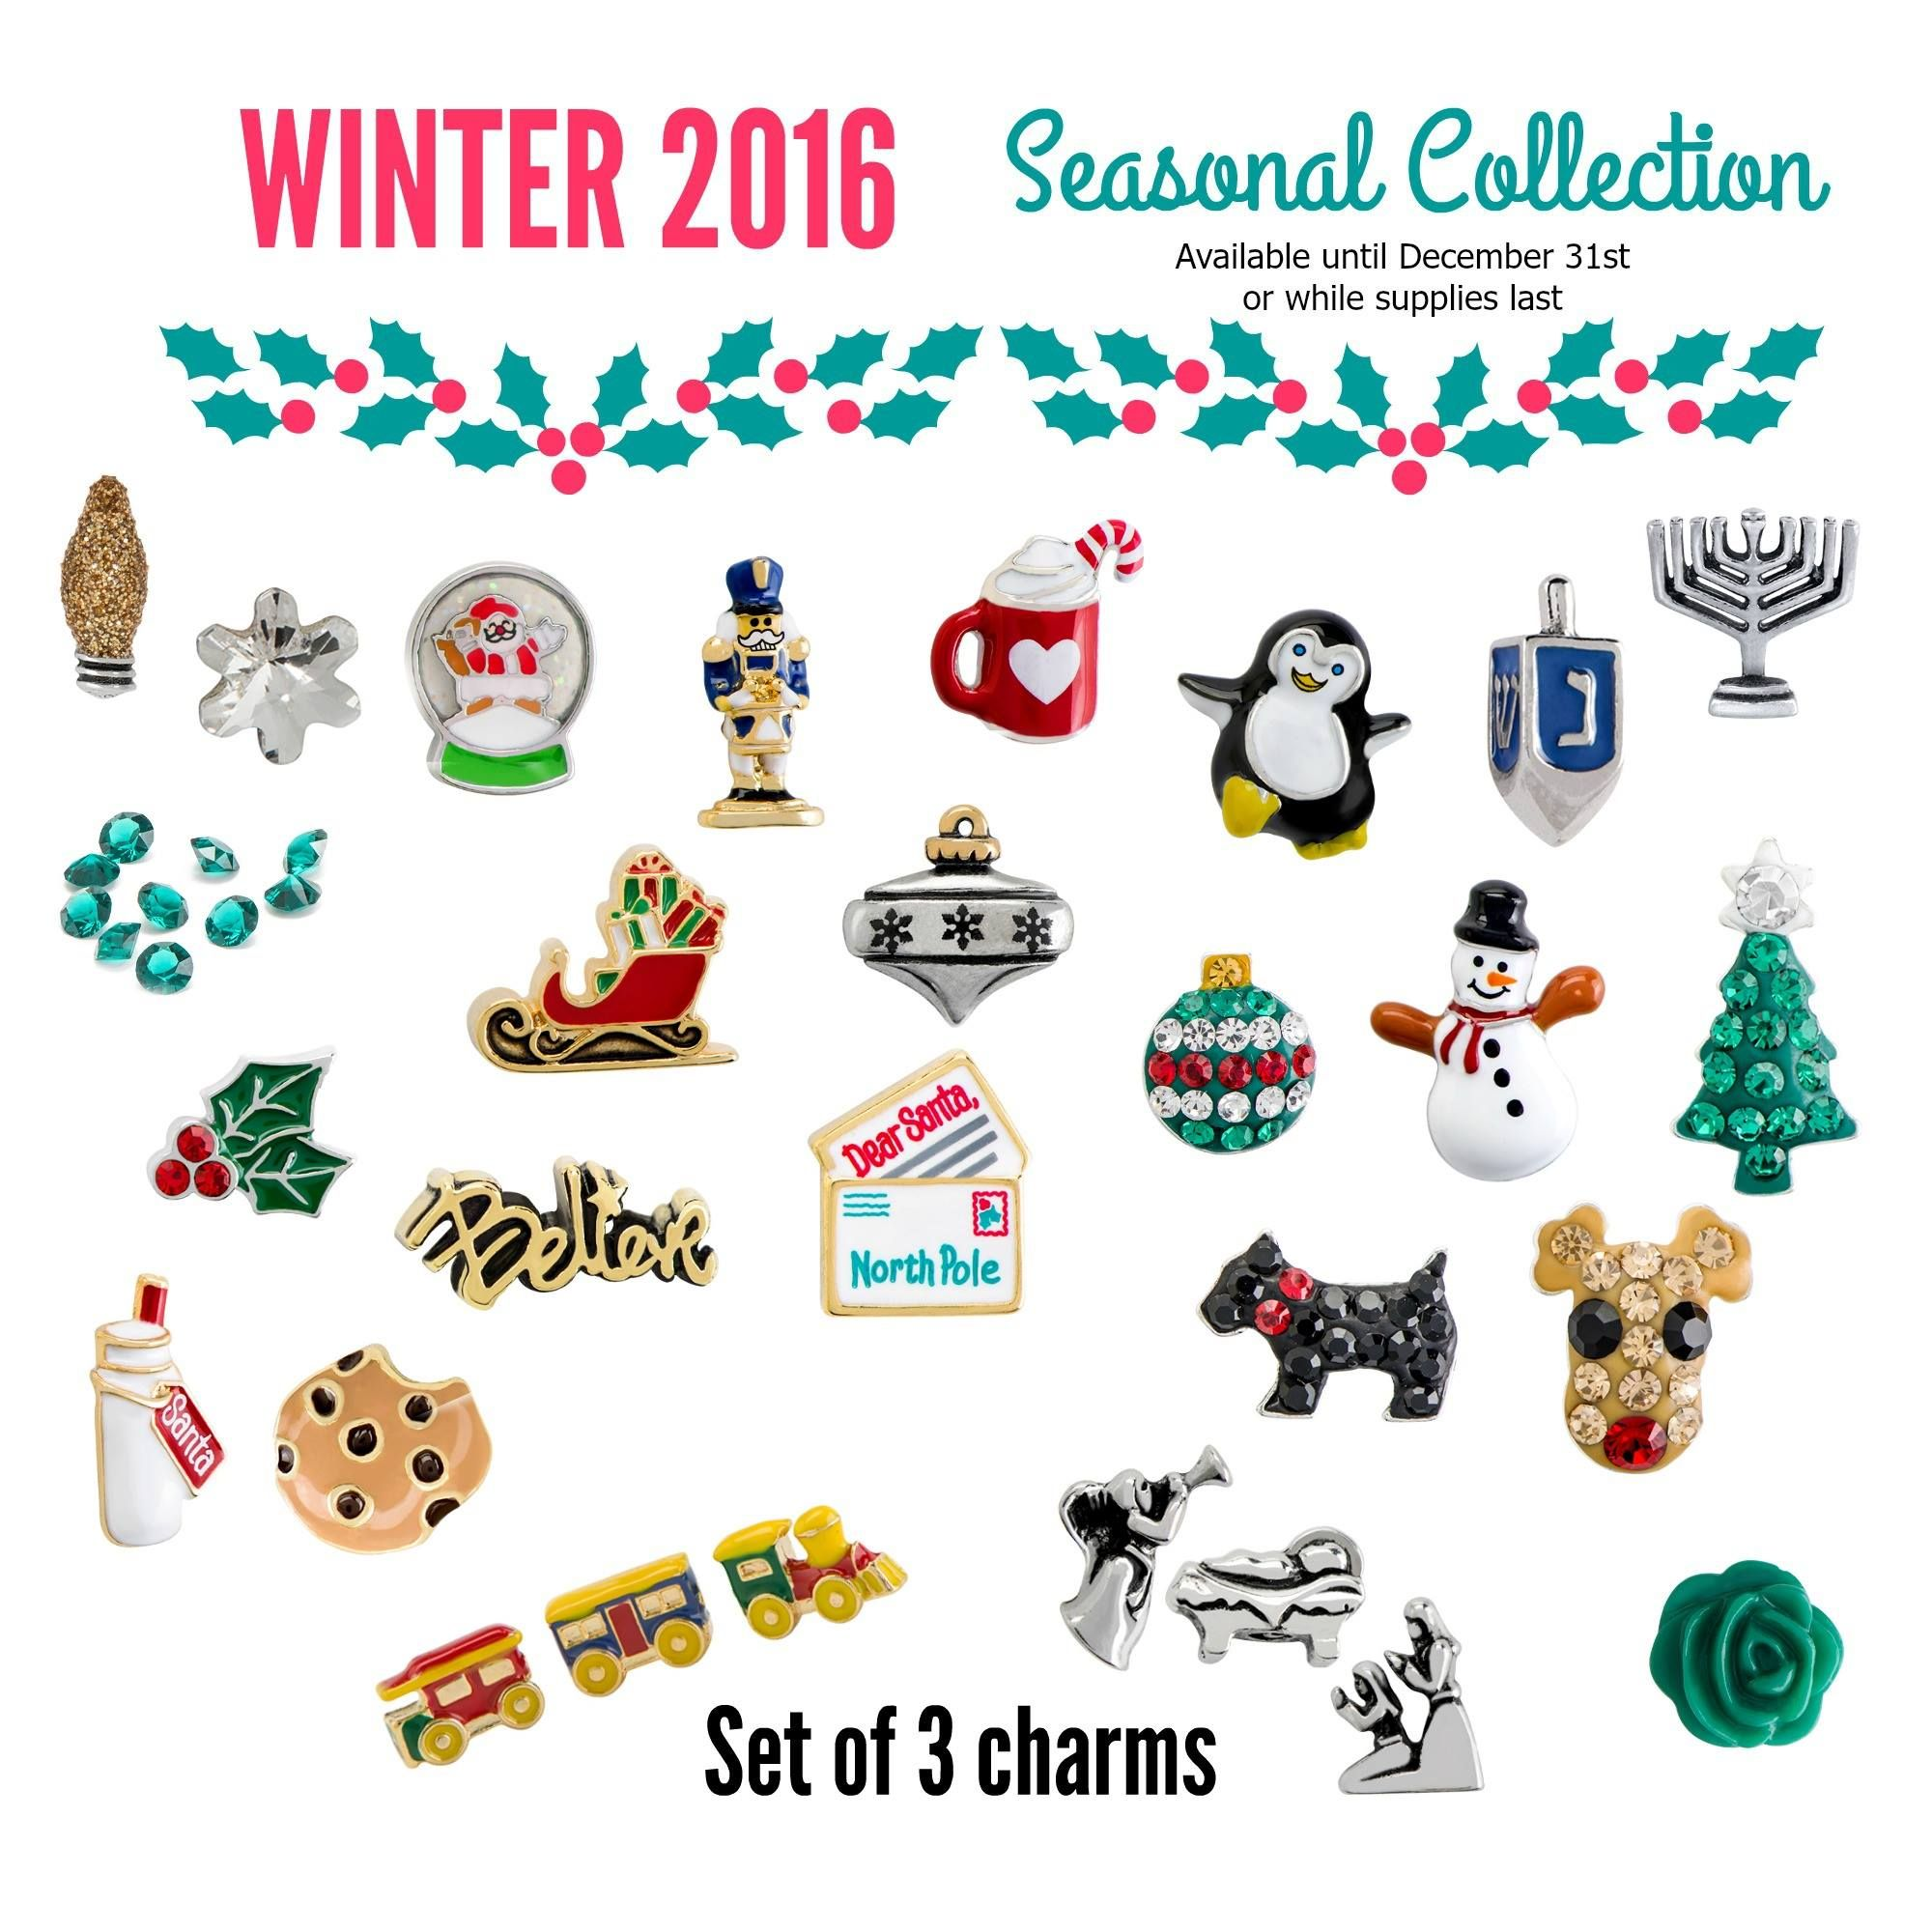 Origami owl winter seasonal exclusives www holiday origami owl winter 2016 love the xmas charms like the reindeer n penguin globe sled jeuxipadfo Gallery